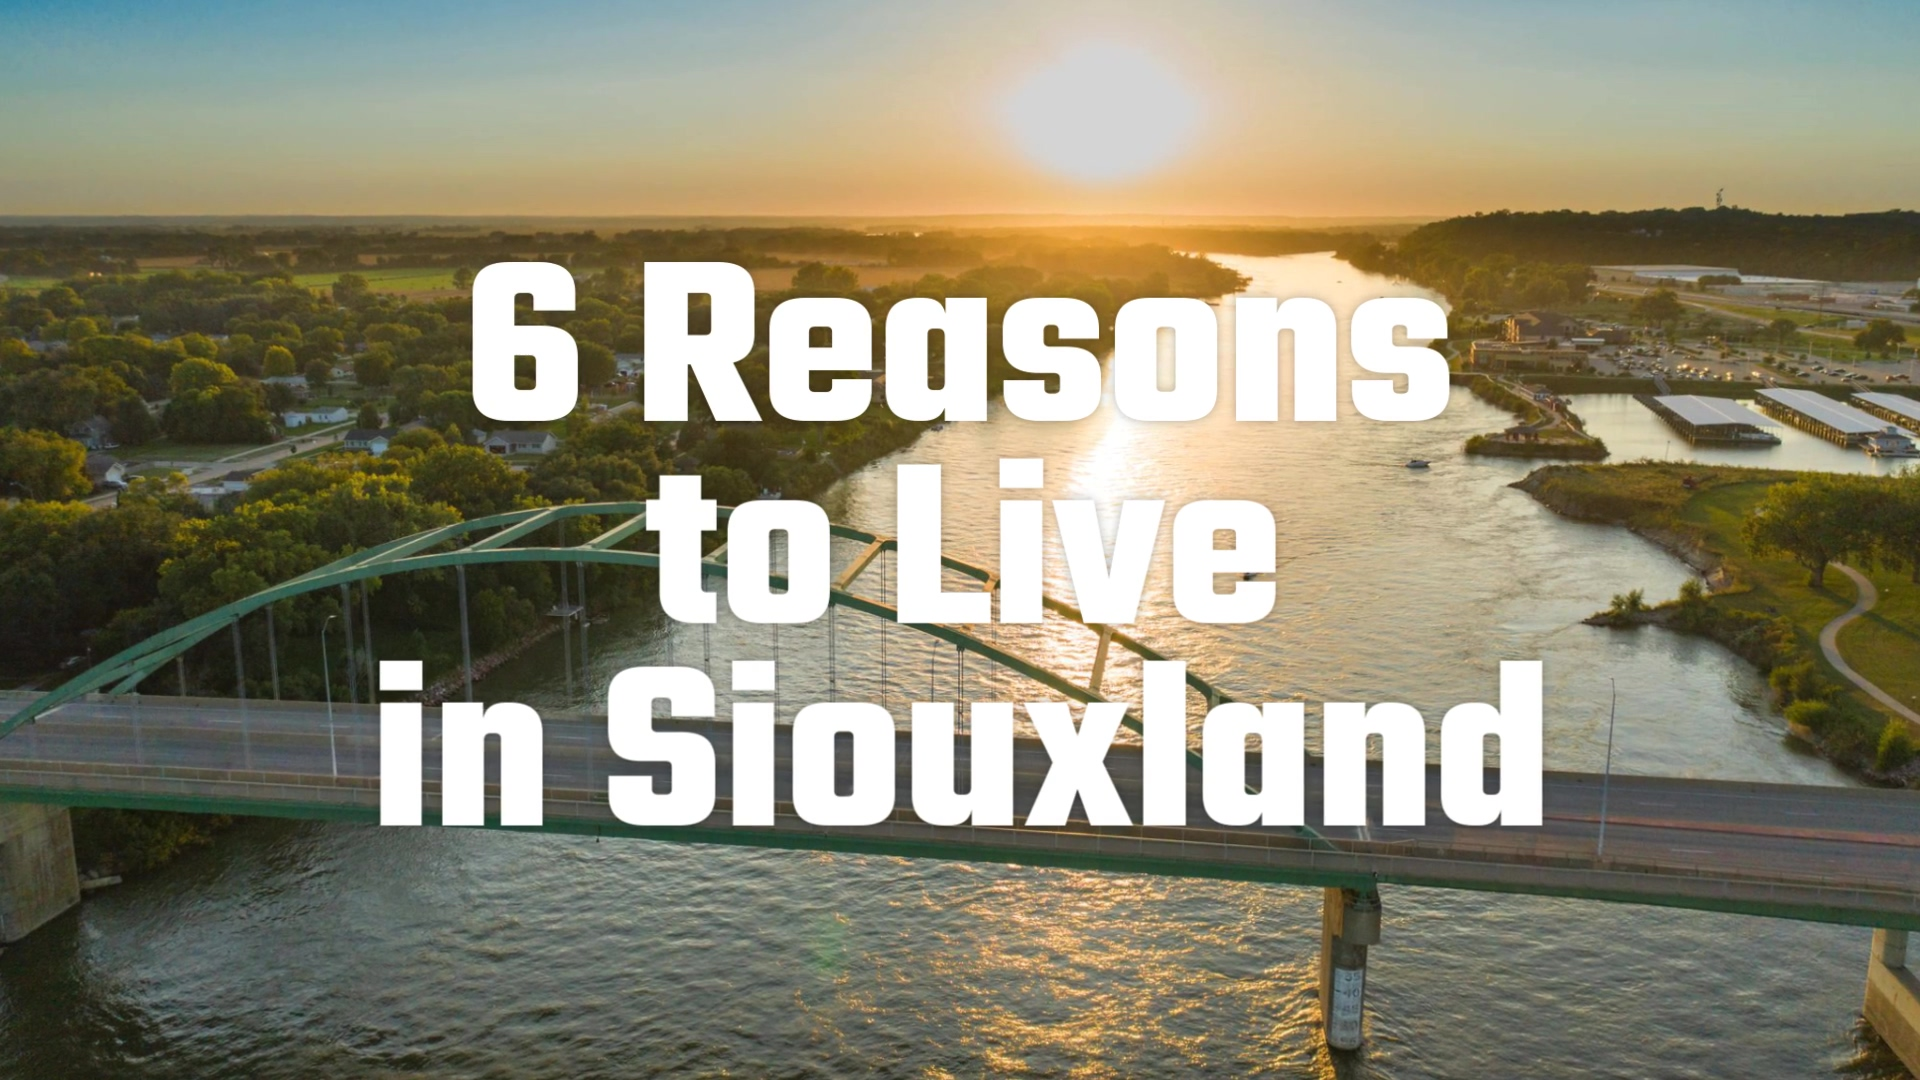 6_Reasons_to_Live_in_Siouxland_-_New_1080p